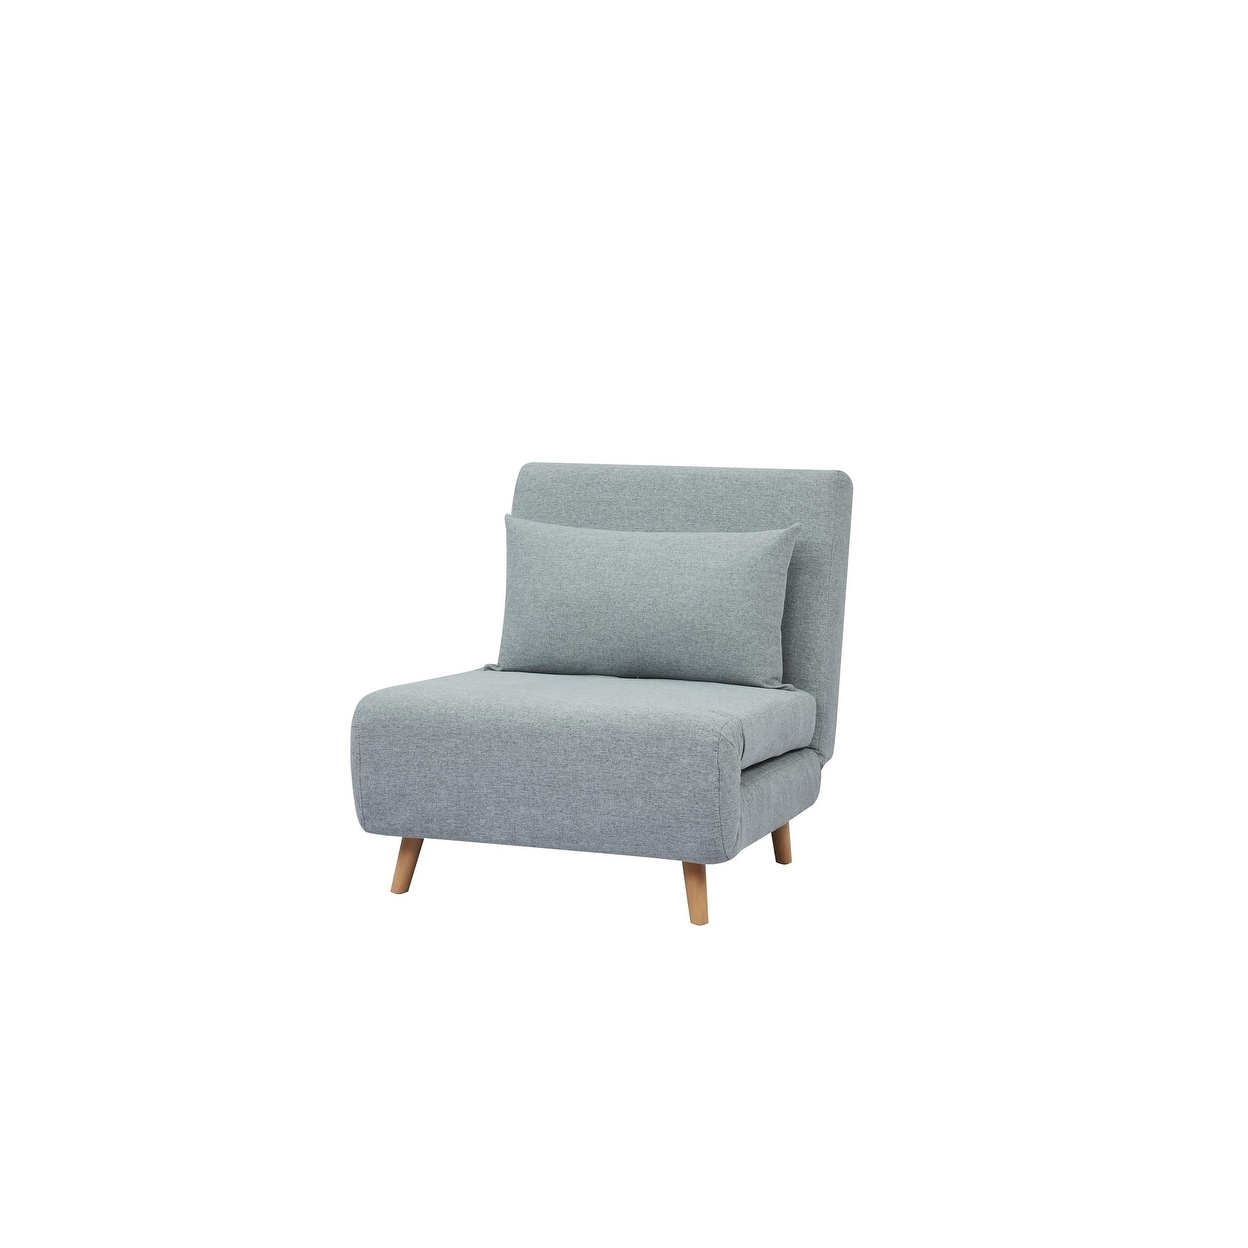 Tustin Upholstered Convertible Lounge/ Sleeper Chair In New London Convertible Chairs (View 10 of 15)